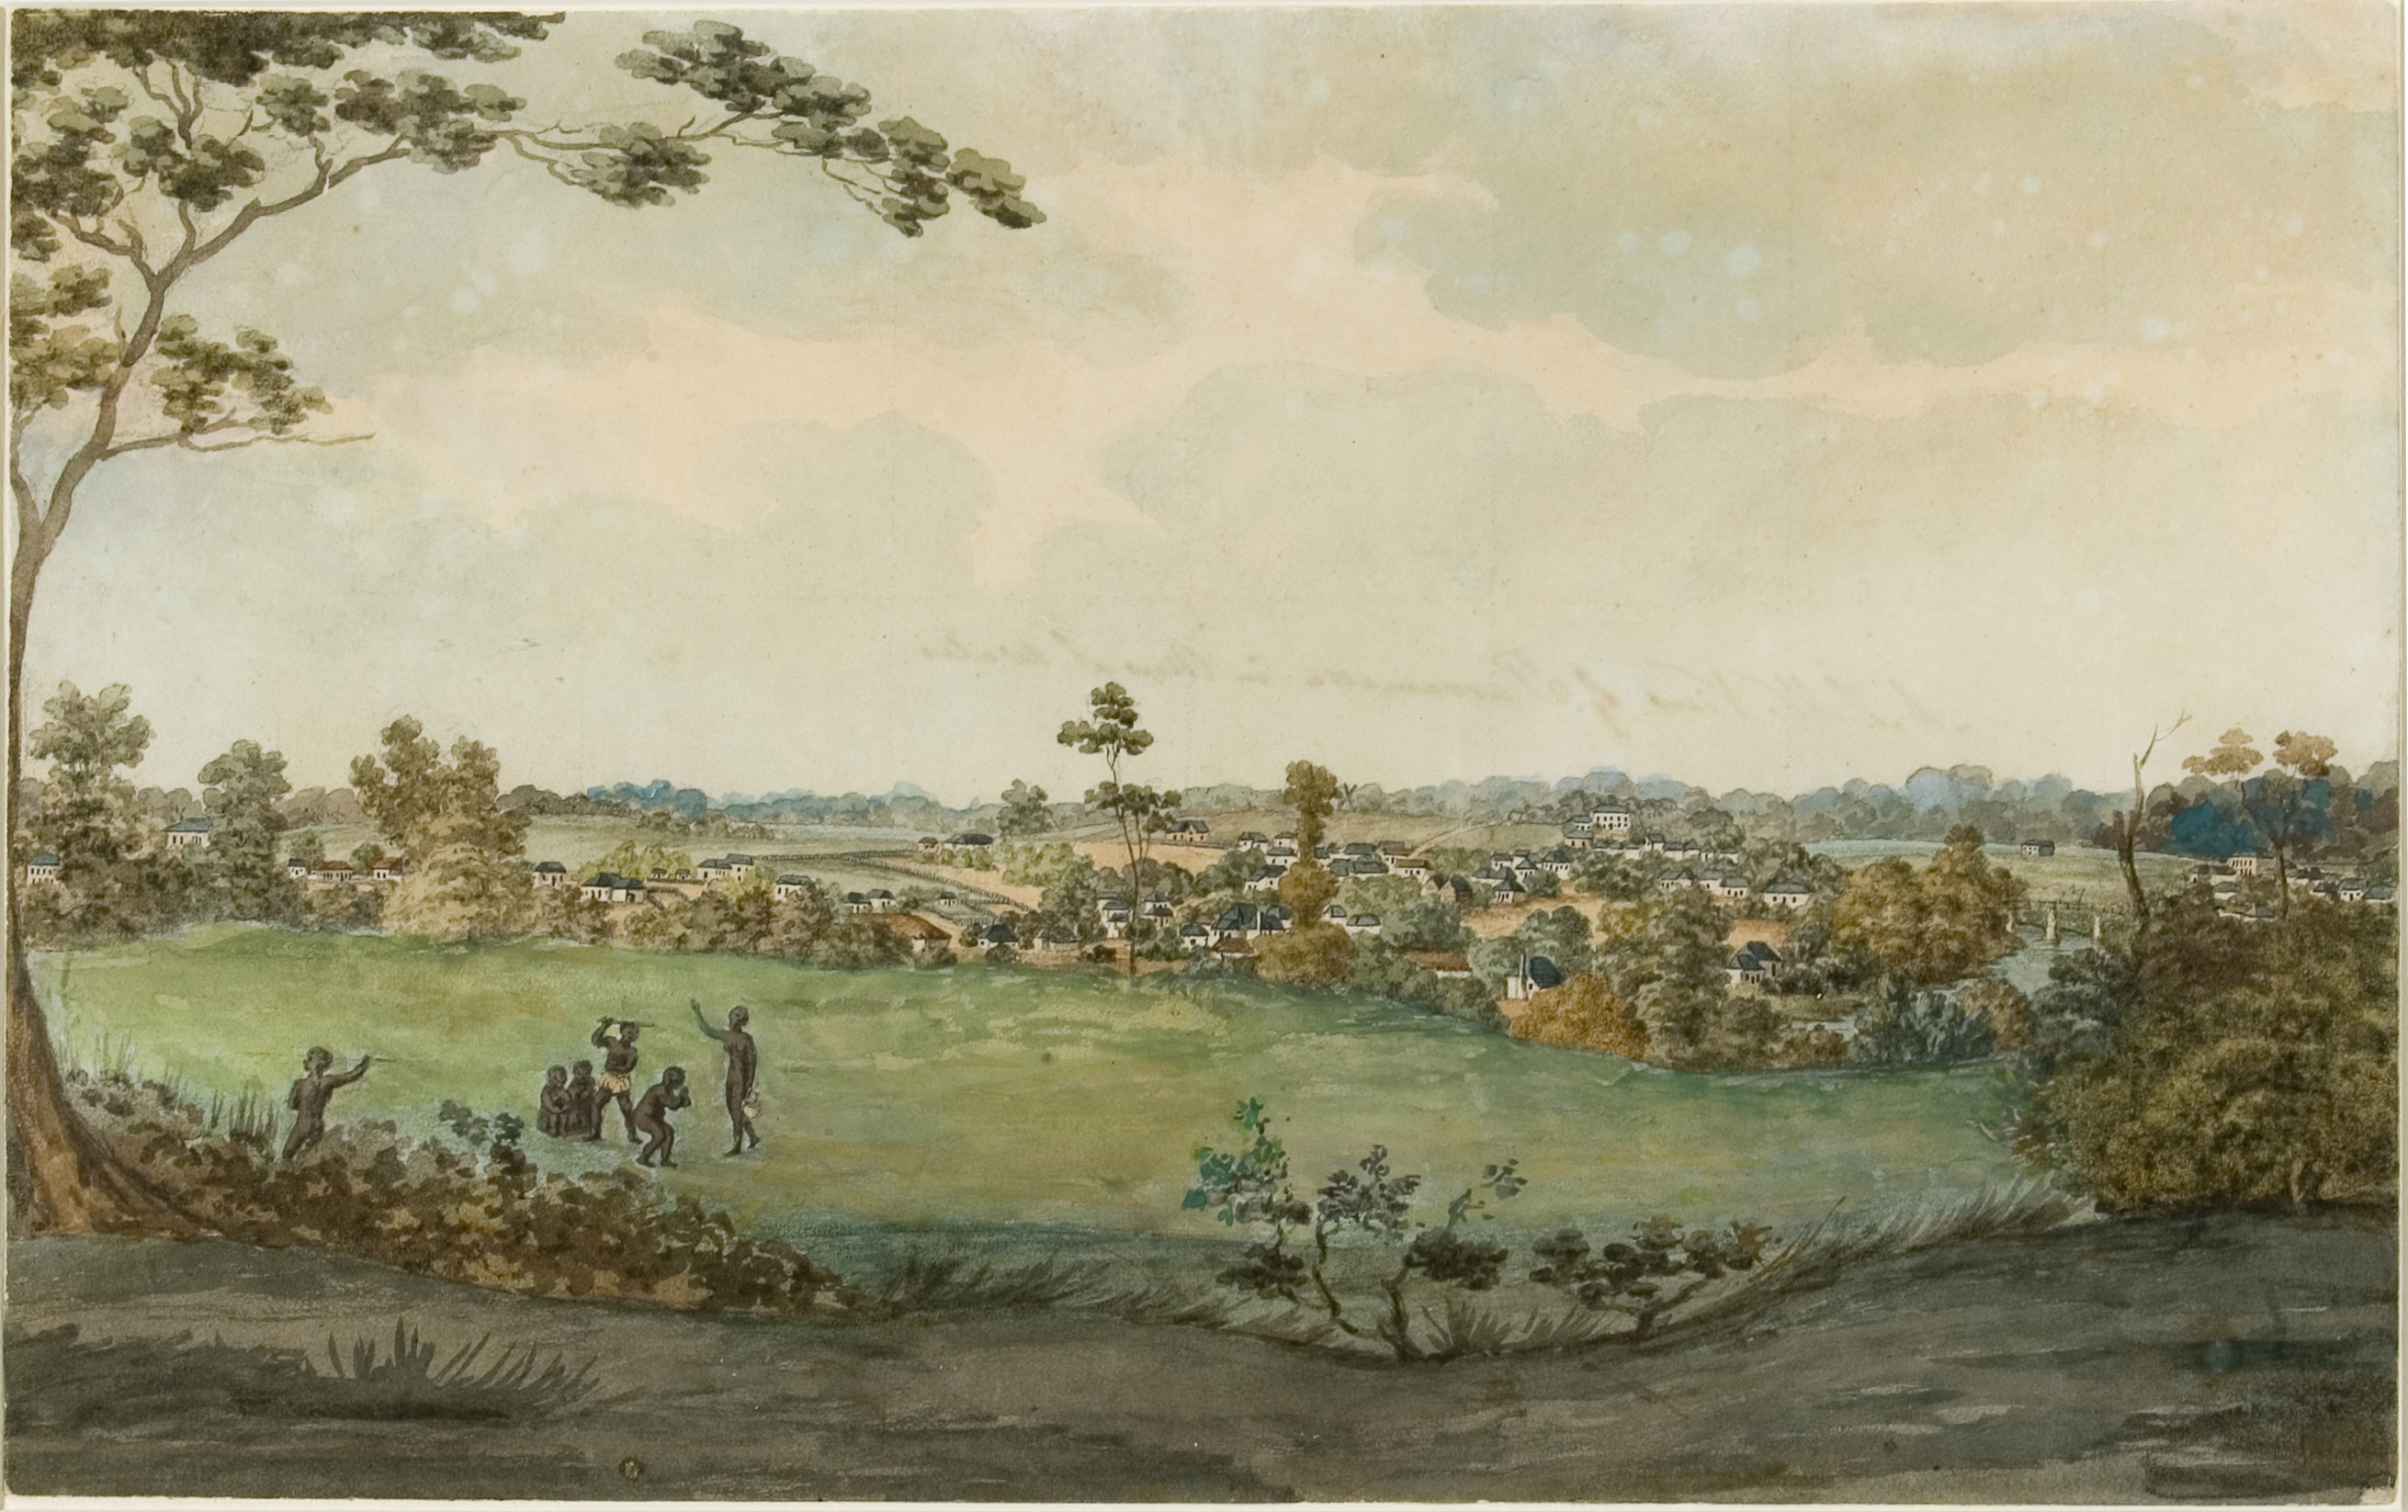 South west view of Parramatta in New South Wales 1811 / artist unknown